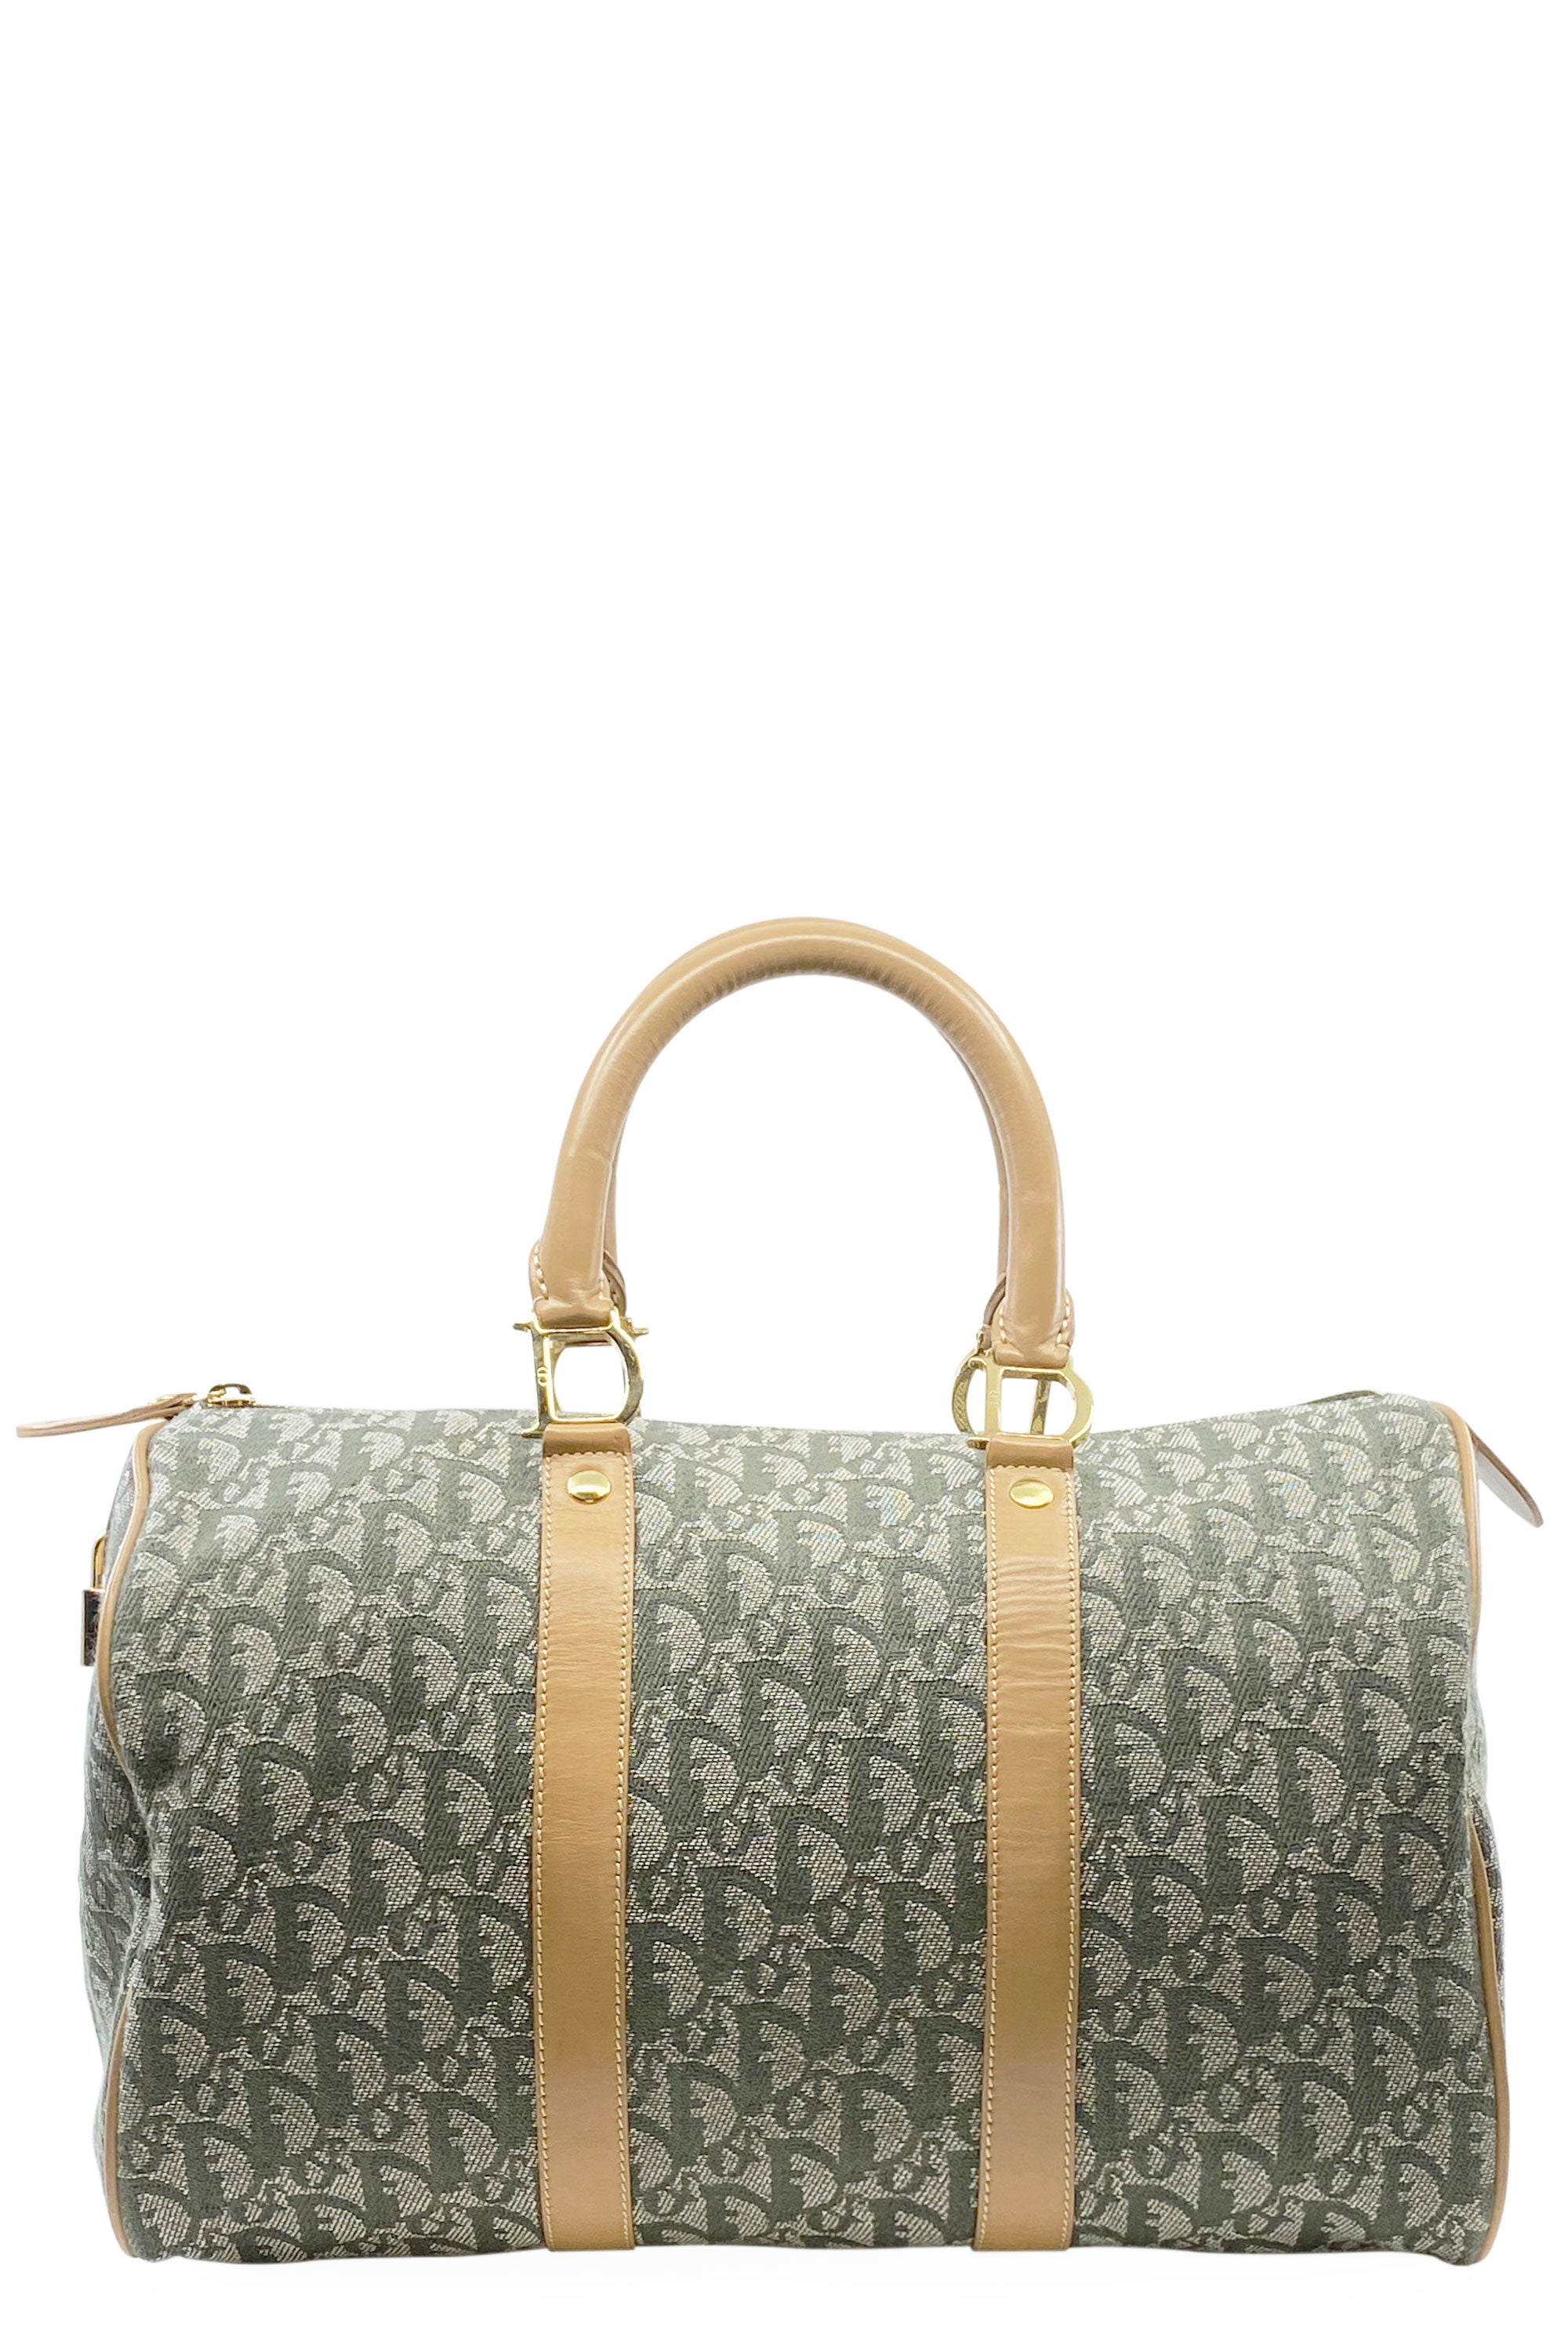 CHRISTIAN DIOR Boston Bag Green